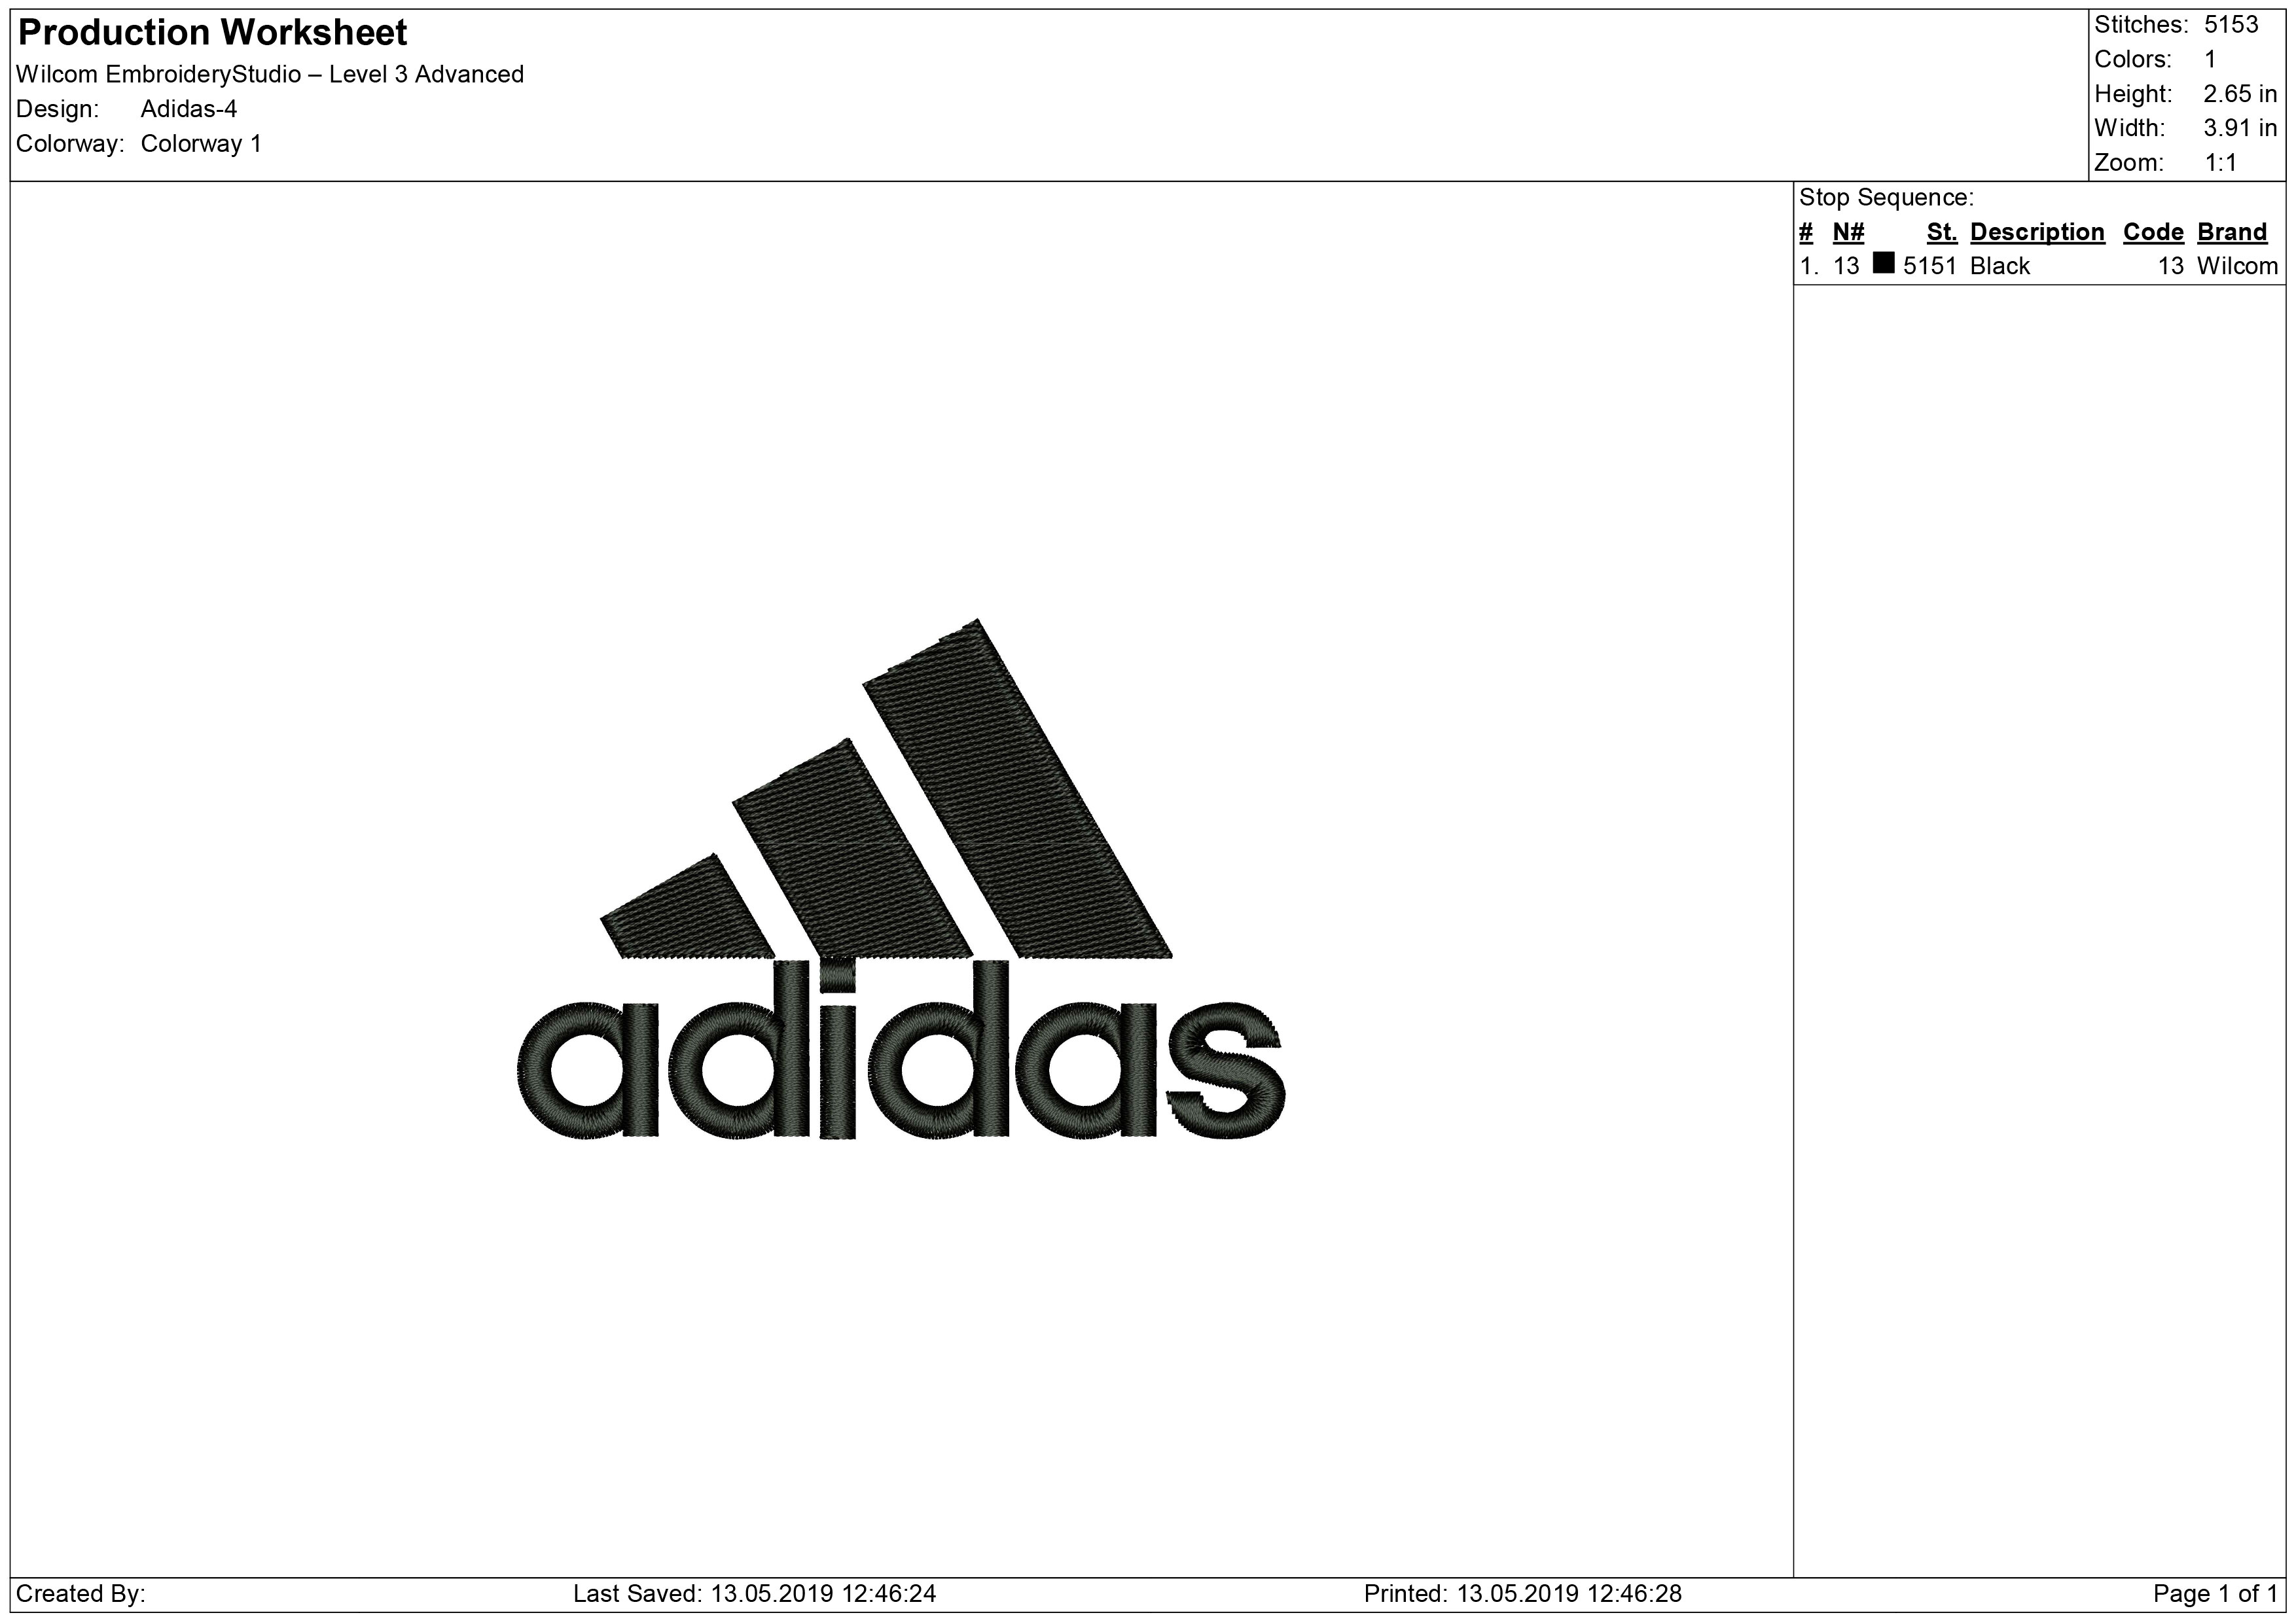 b4f7a40ac0d632 Adidas Embroidery design – Machine Embroidery designs and SVG files